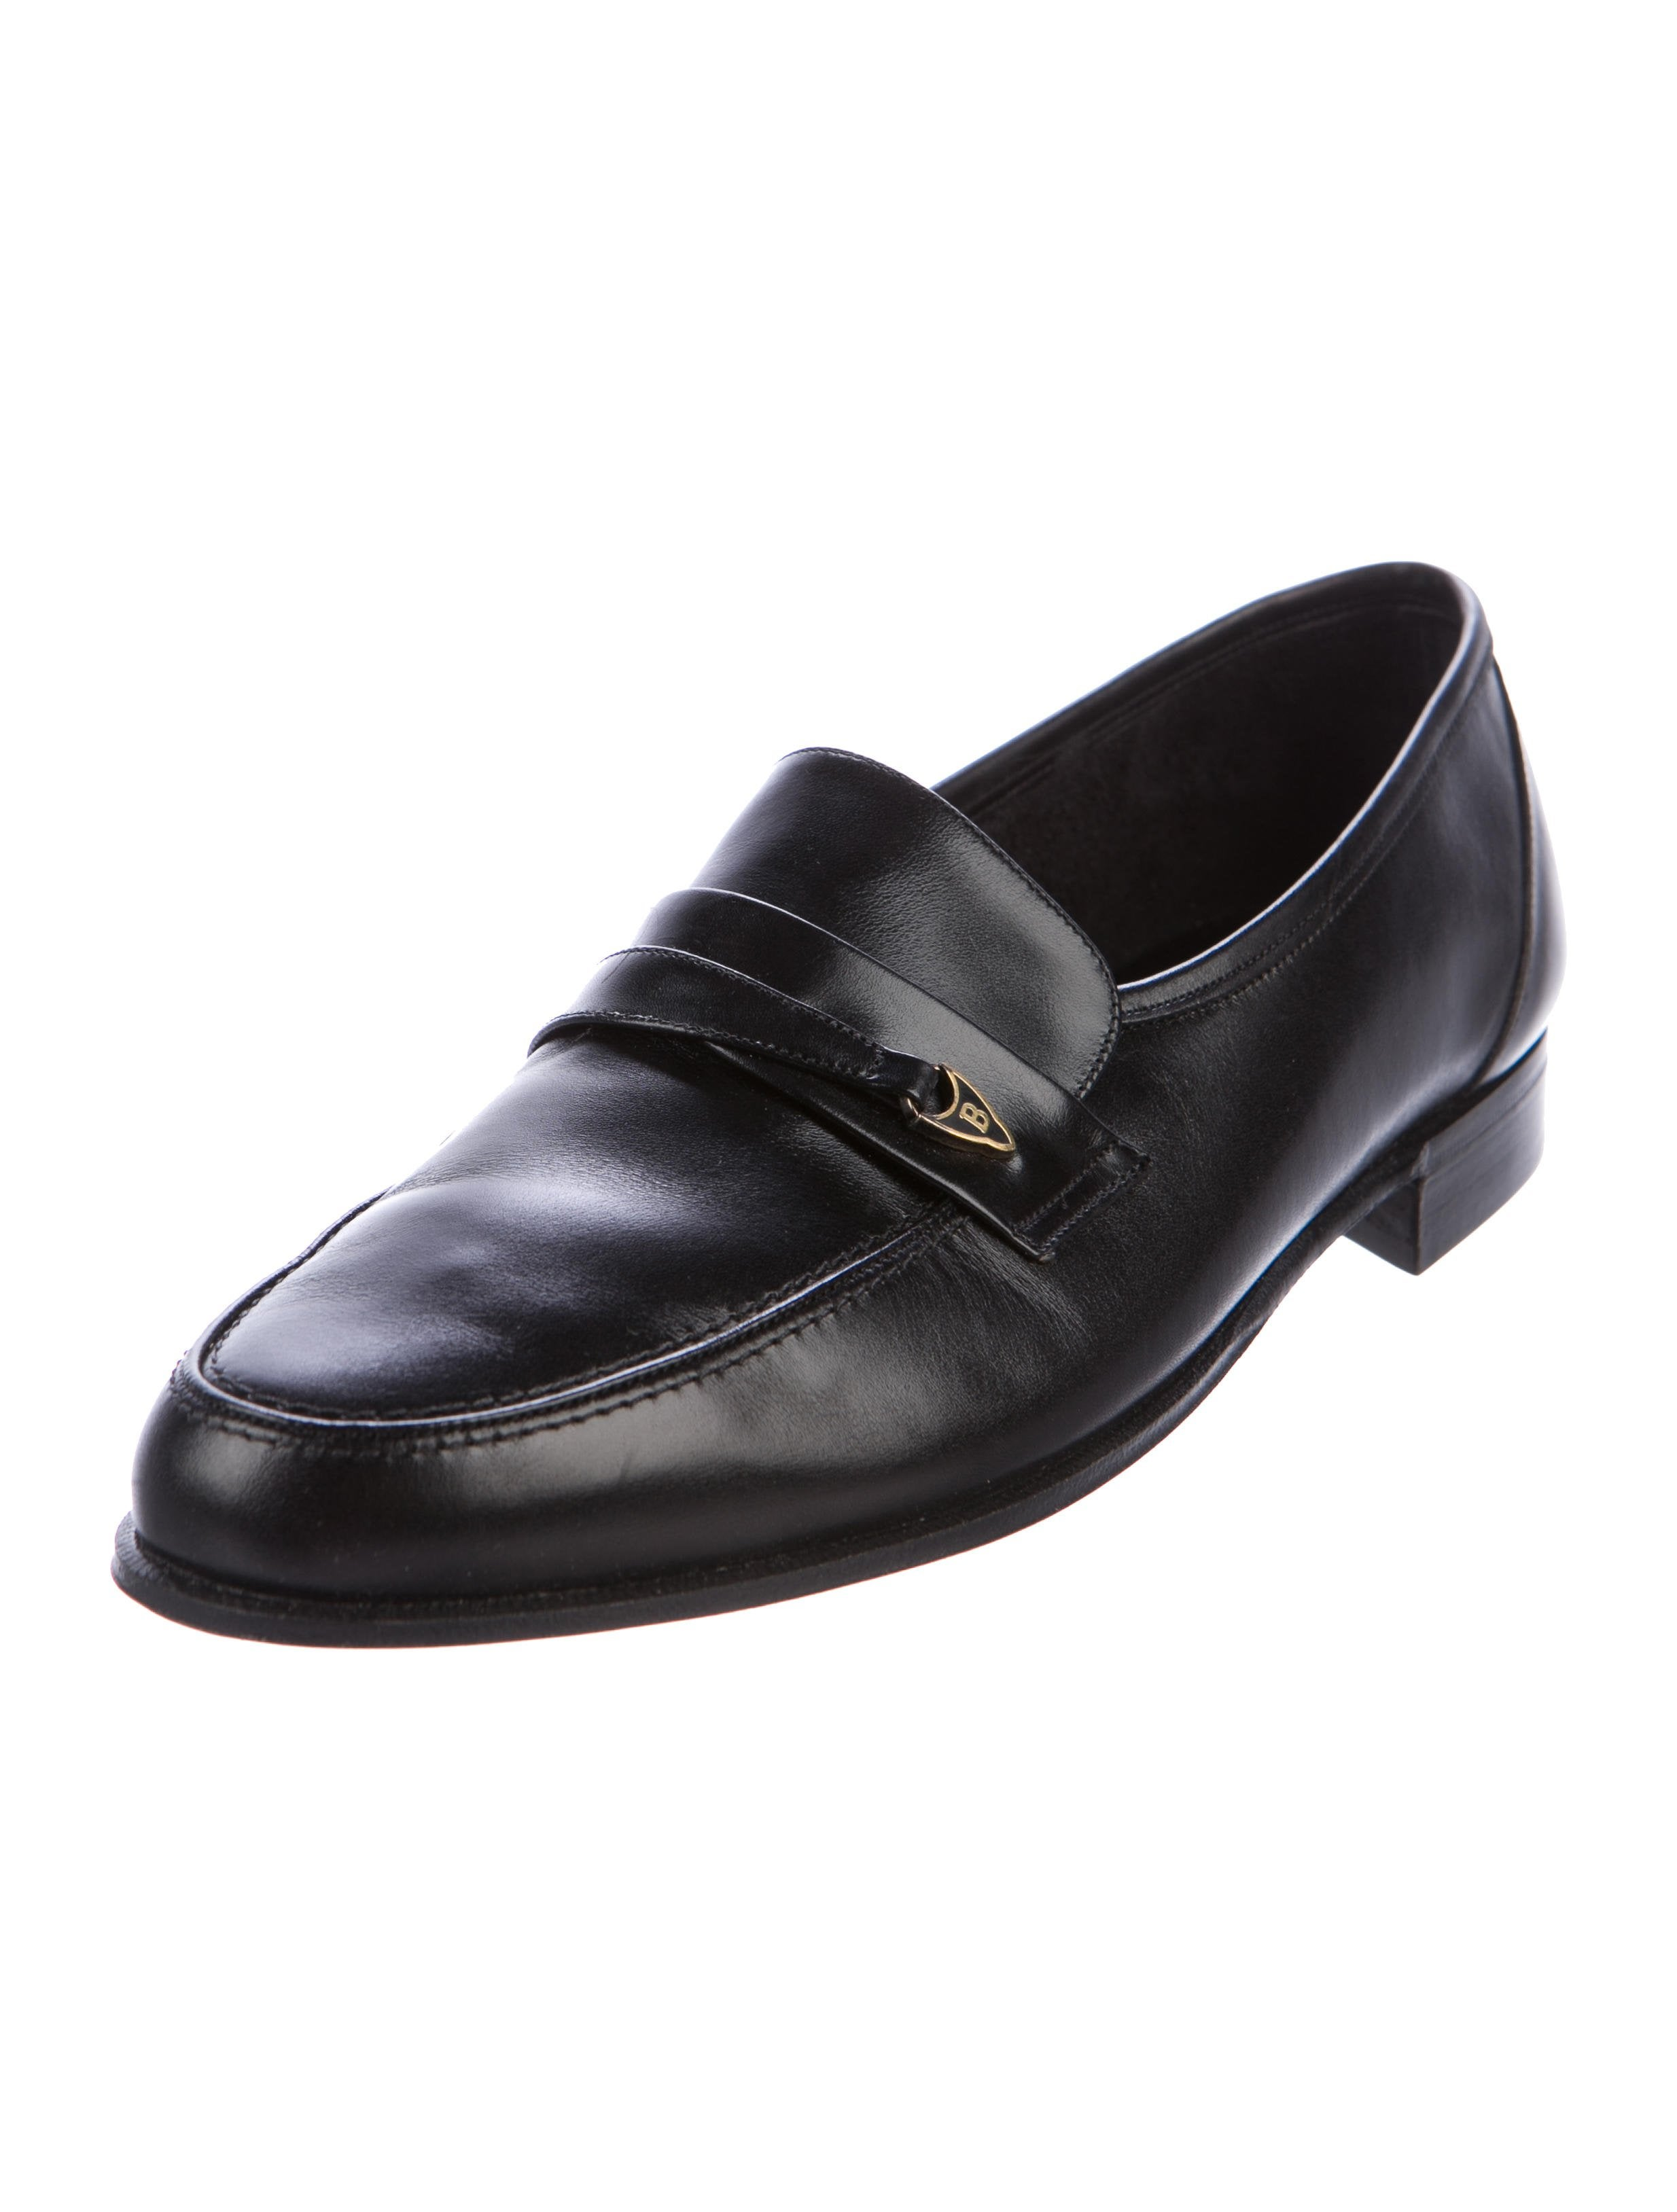 Bally Leather Round-Toe Loafers